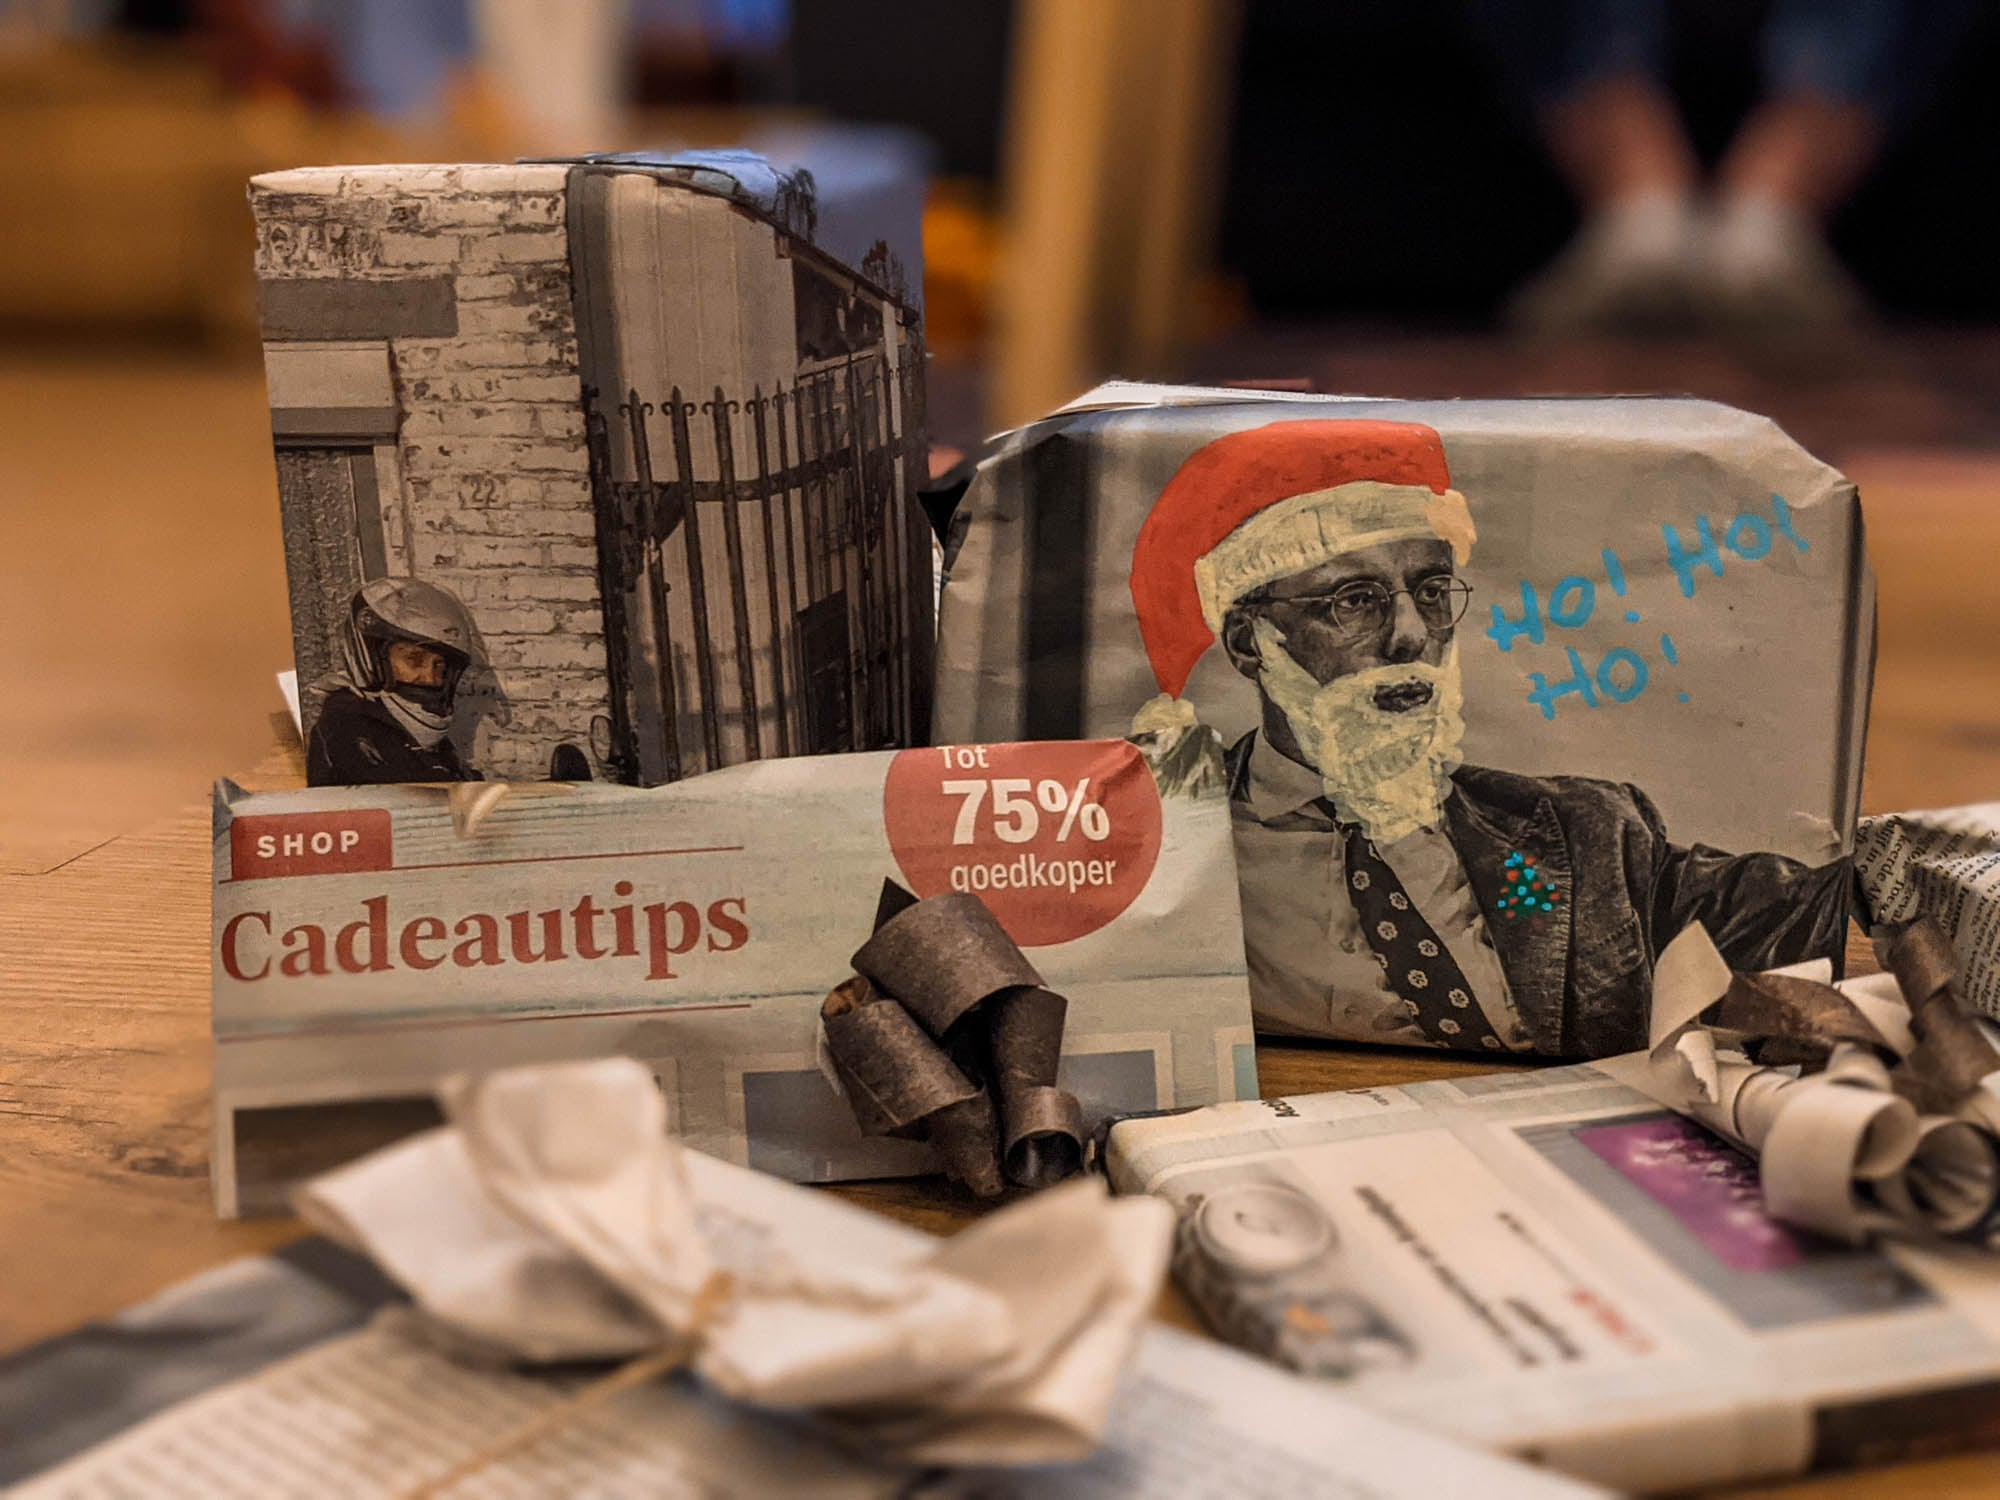 Christmas gifts wrapped and decorated with newspapers